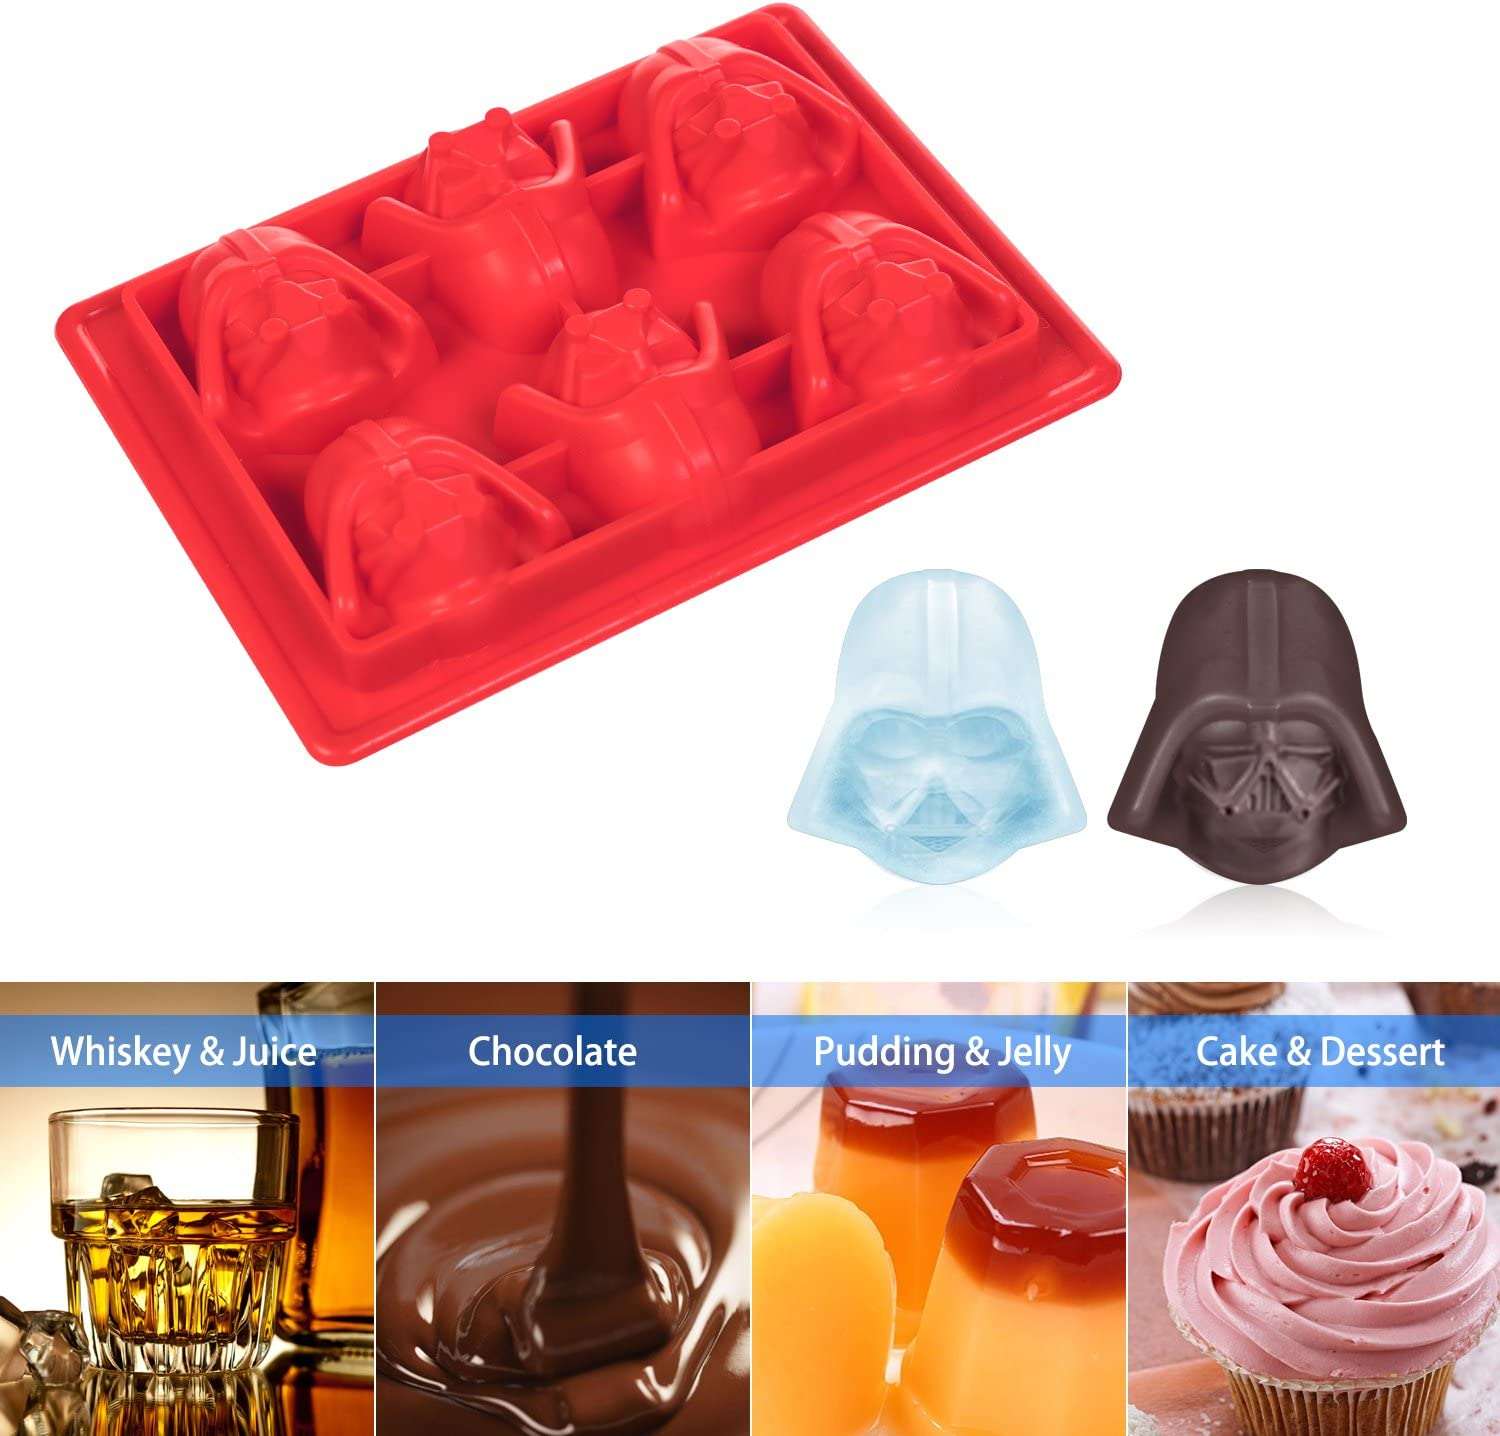 Gelatin Dessert Ice Mould Cube Tray Shape Chocolate Mold -Family care 6 X Silicone Ice Cubes Chocolate Candy